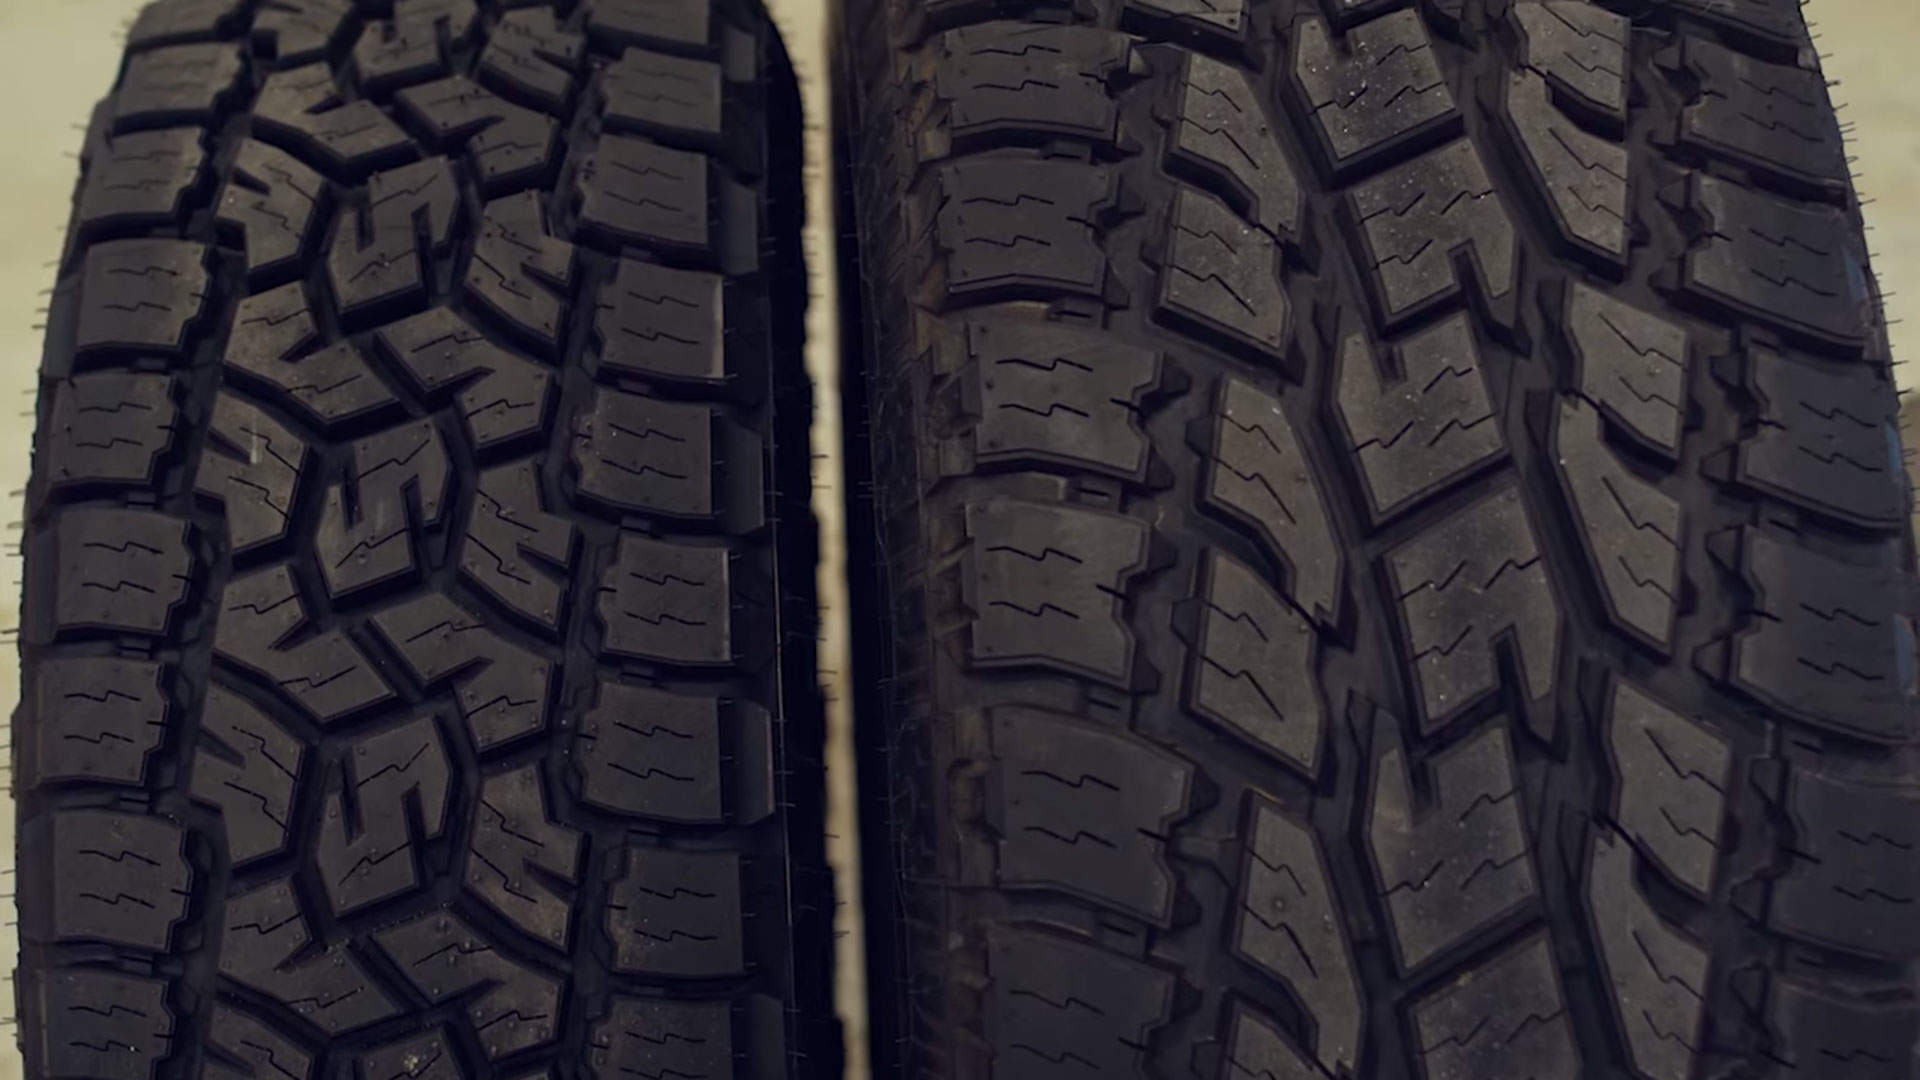 Toyo Open Country AT3 on the left, Toyo AT2 on the right